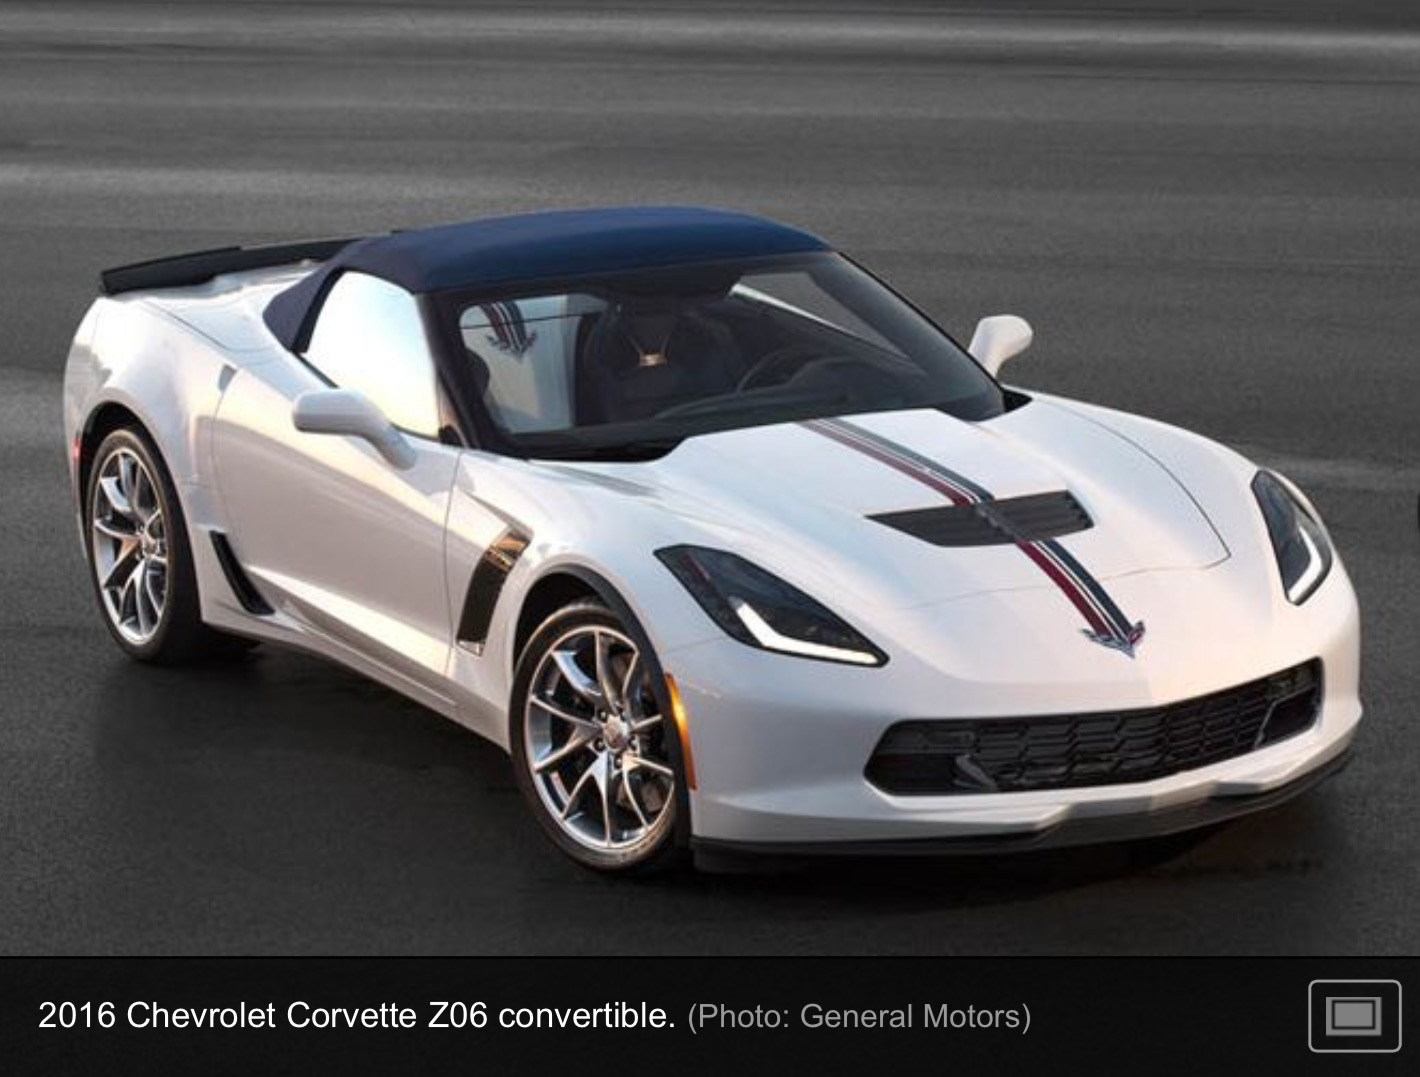 Superb ... The Best Sports Car On Earth. Attachment 27655